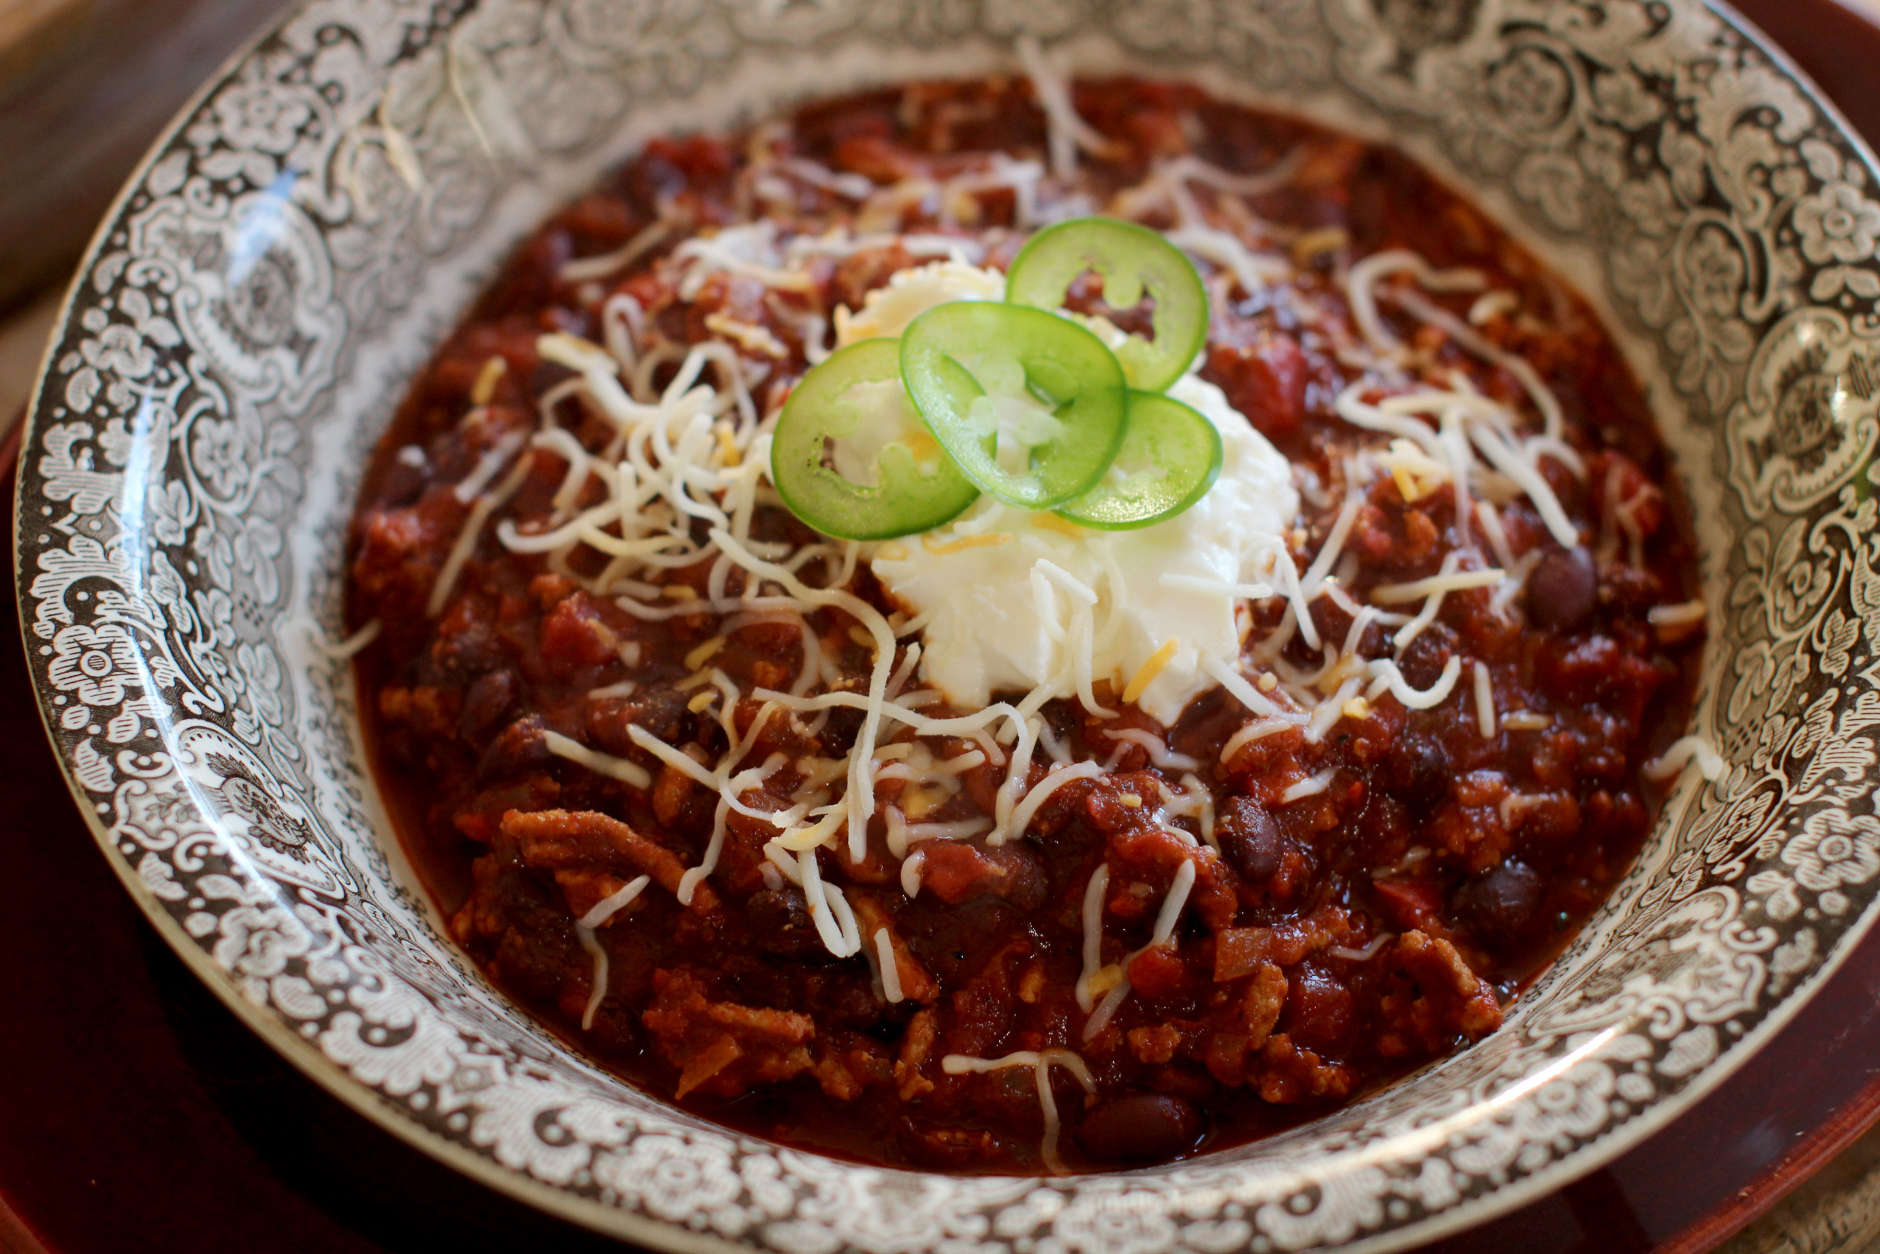 This Nov. 16, 2015 photo shows game day turkey chili in Concord, NH. Everyone has a favorite chili recipe, and this is the time of year to break out yours, invite some friends over and yell at some football players on TV. (AP Photo/Matthew Mead)